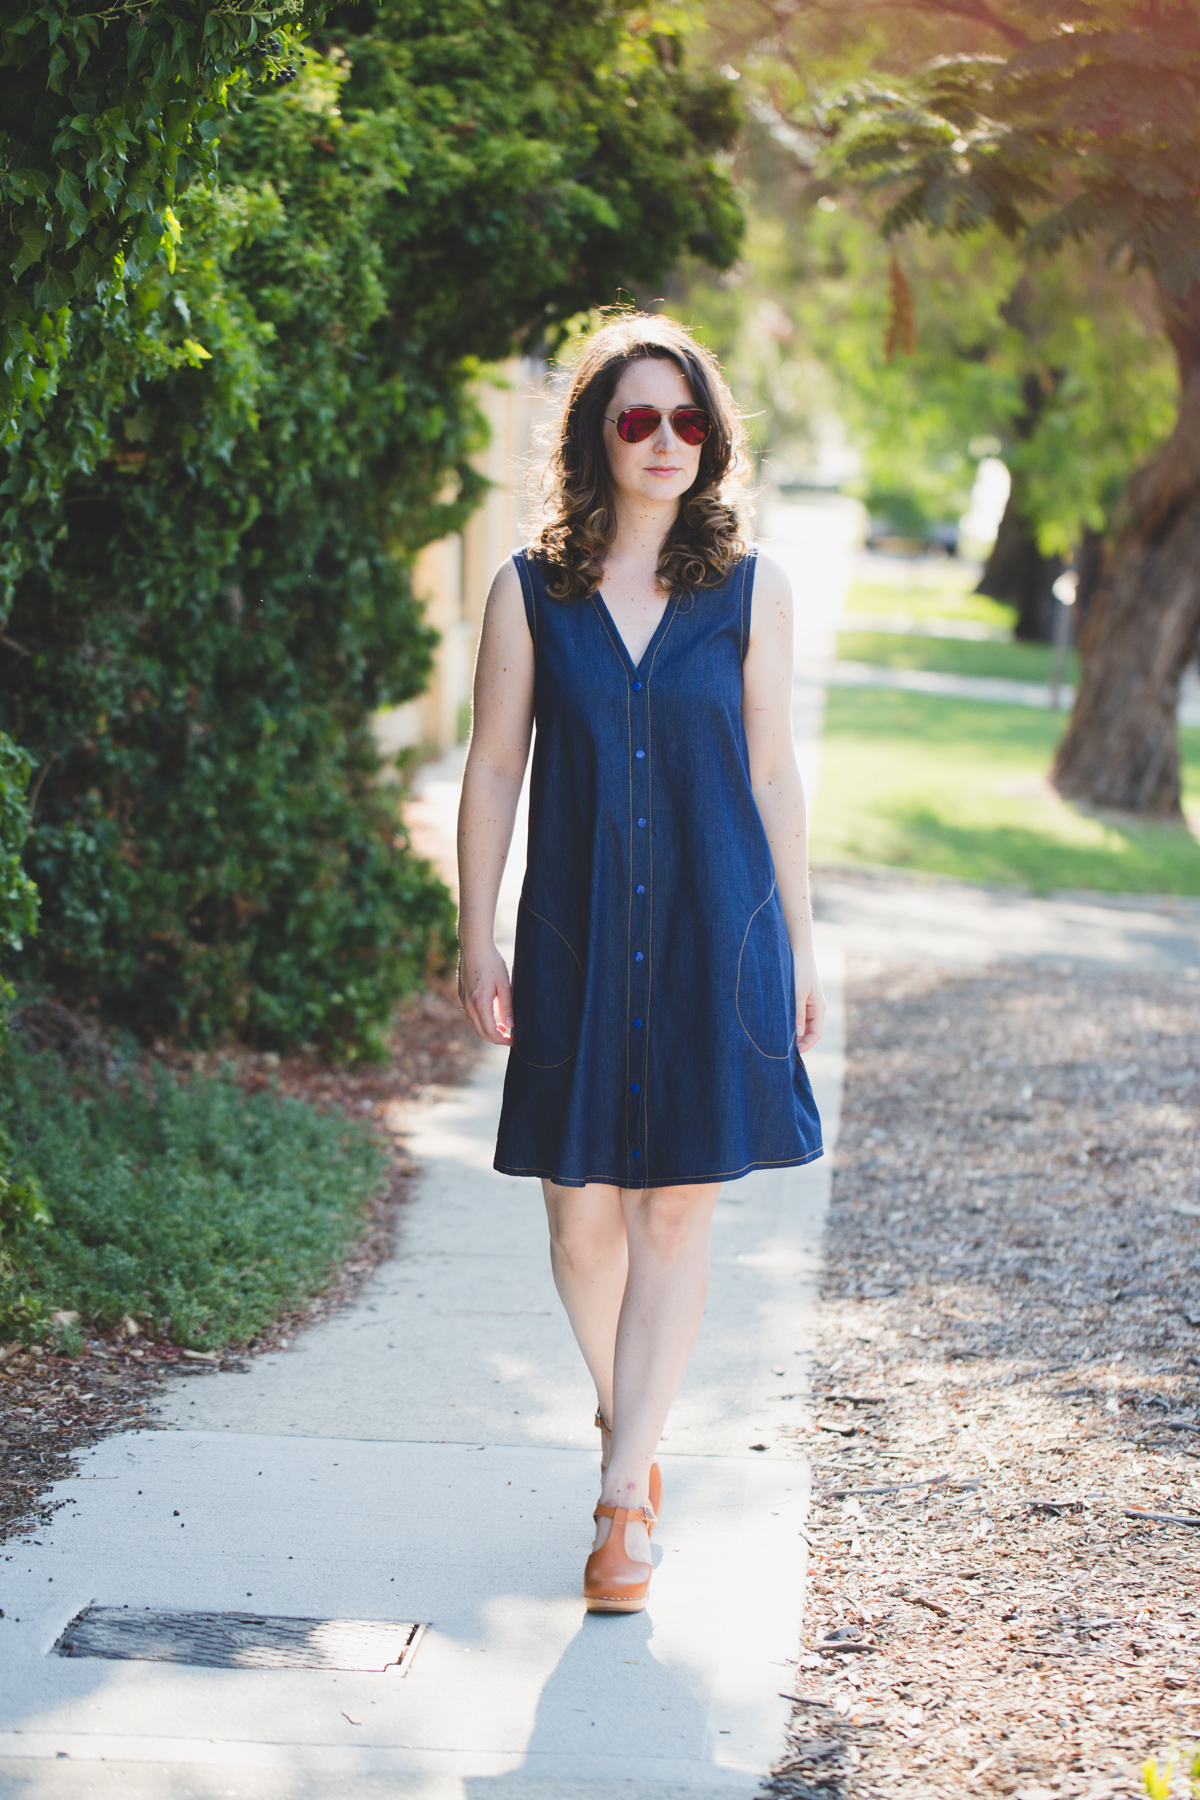 10 most worn makes in 10 years of blogging // Megan Nielsen sleeveless dartless Darling Ranges dress